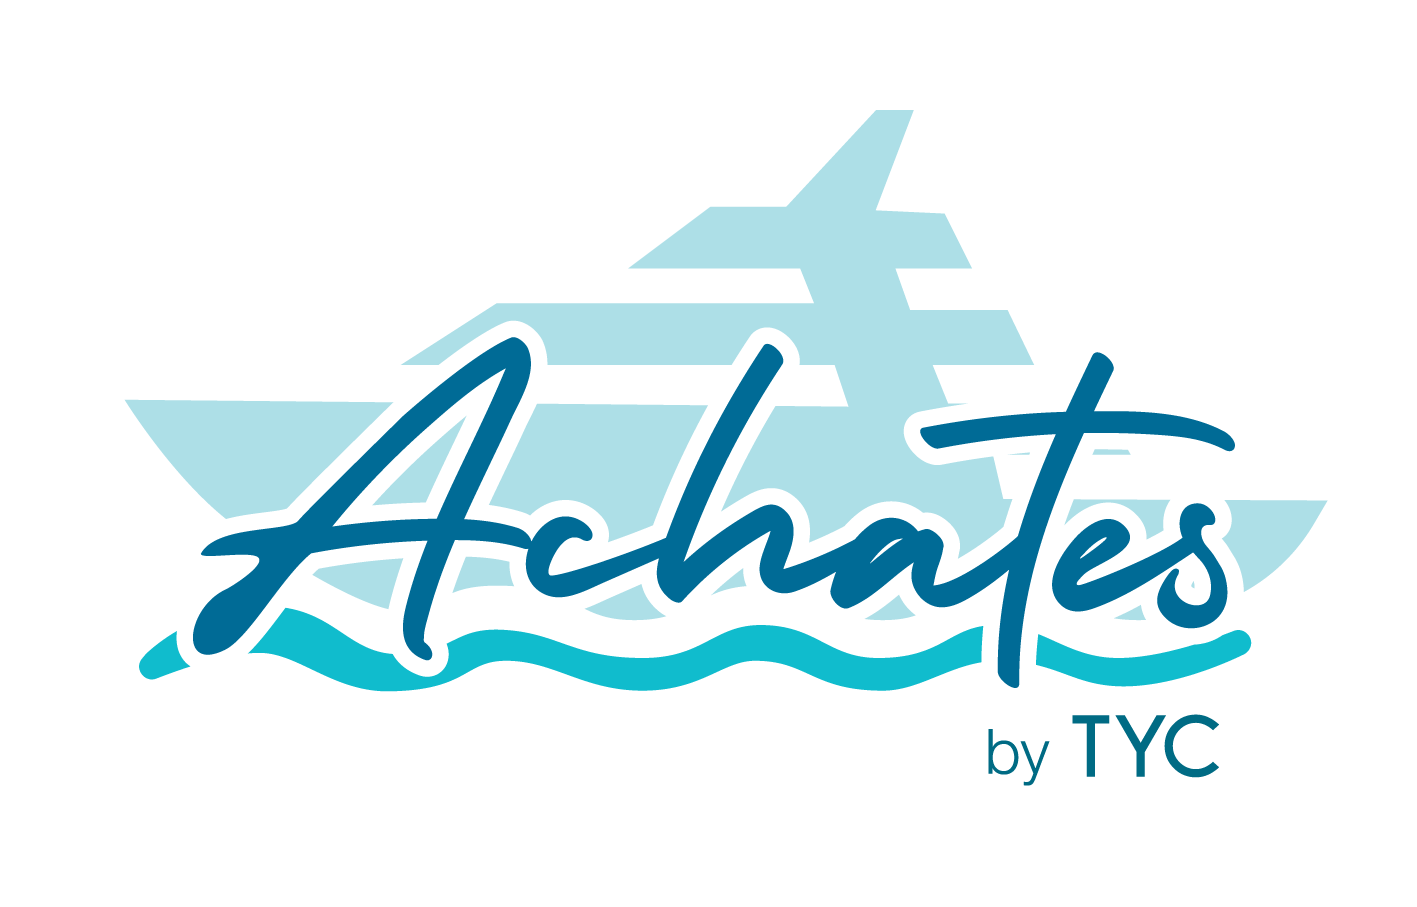 Achates by TYC